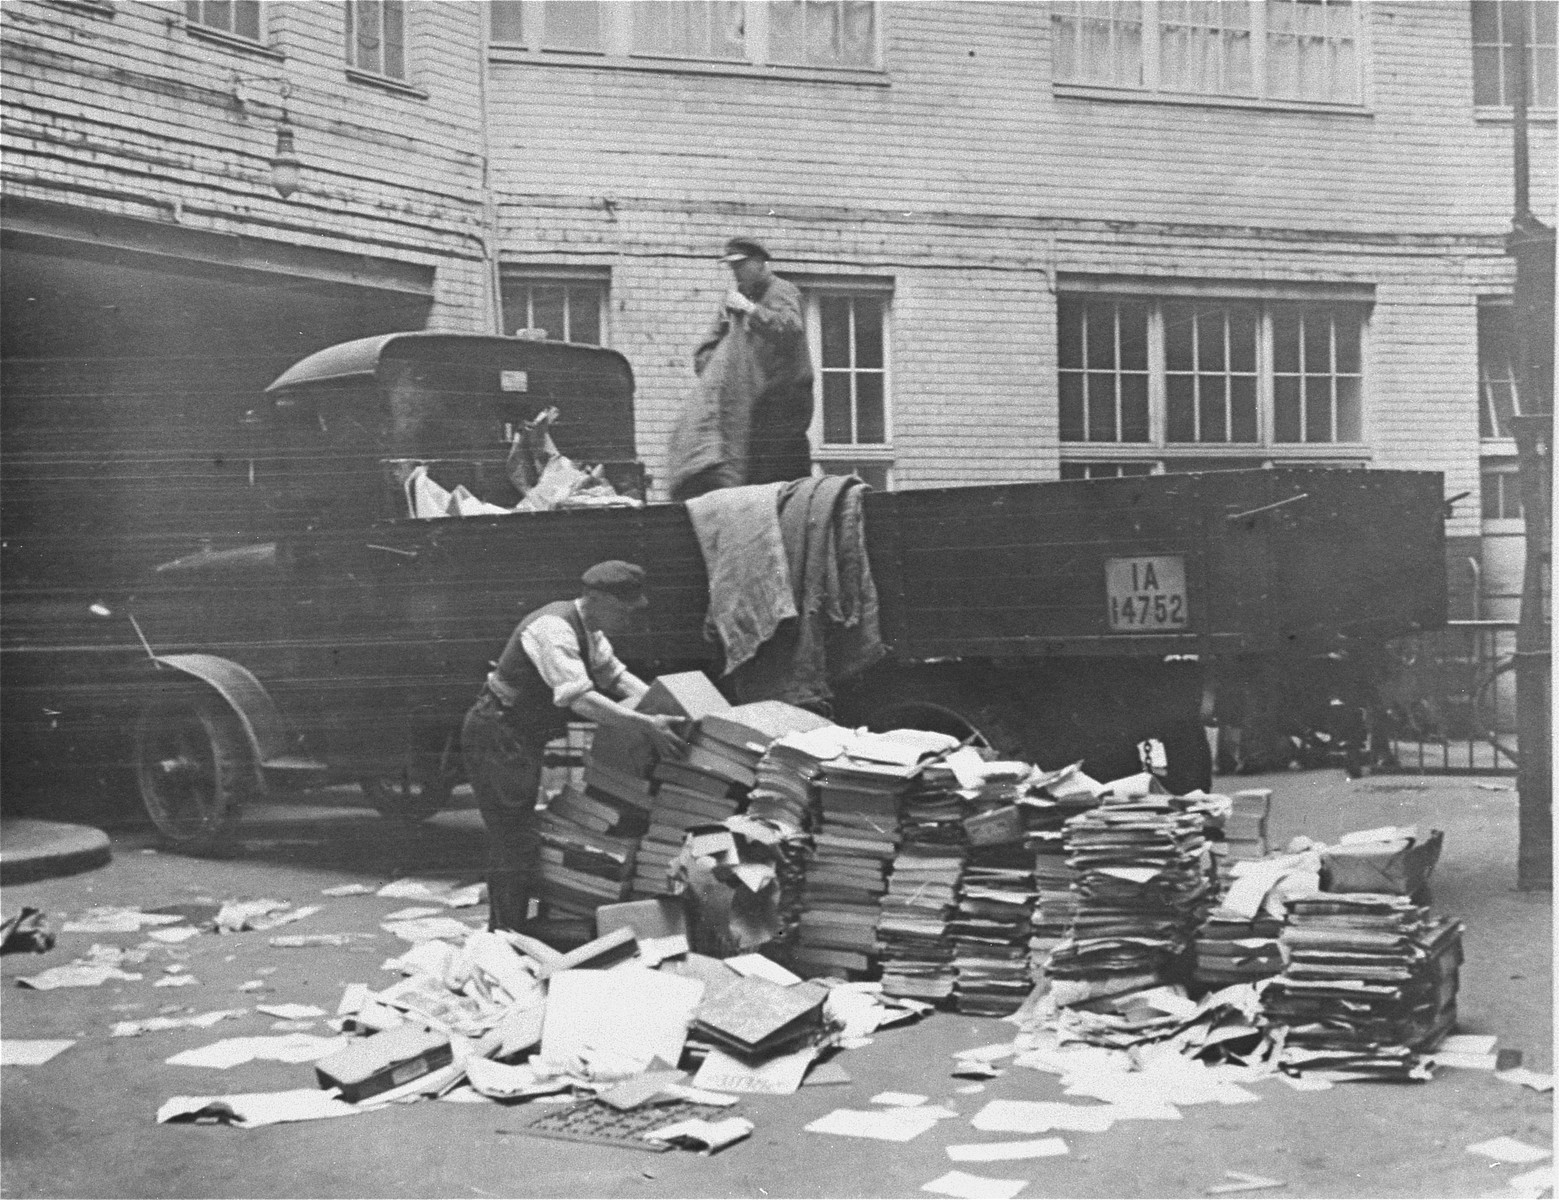 Civilians help load Communist publications onto the back of a truck during a raid of the Karl-Liebknecht House (KPD headquarters), which was on the Buelowplatz in Berlin.    The closing of Communist Party offices was declared necessary for the protection of the state in the Enabling Act, passed by the Reichstag soon after the fire of 28 February 1933.